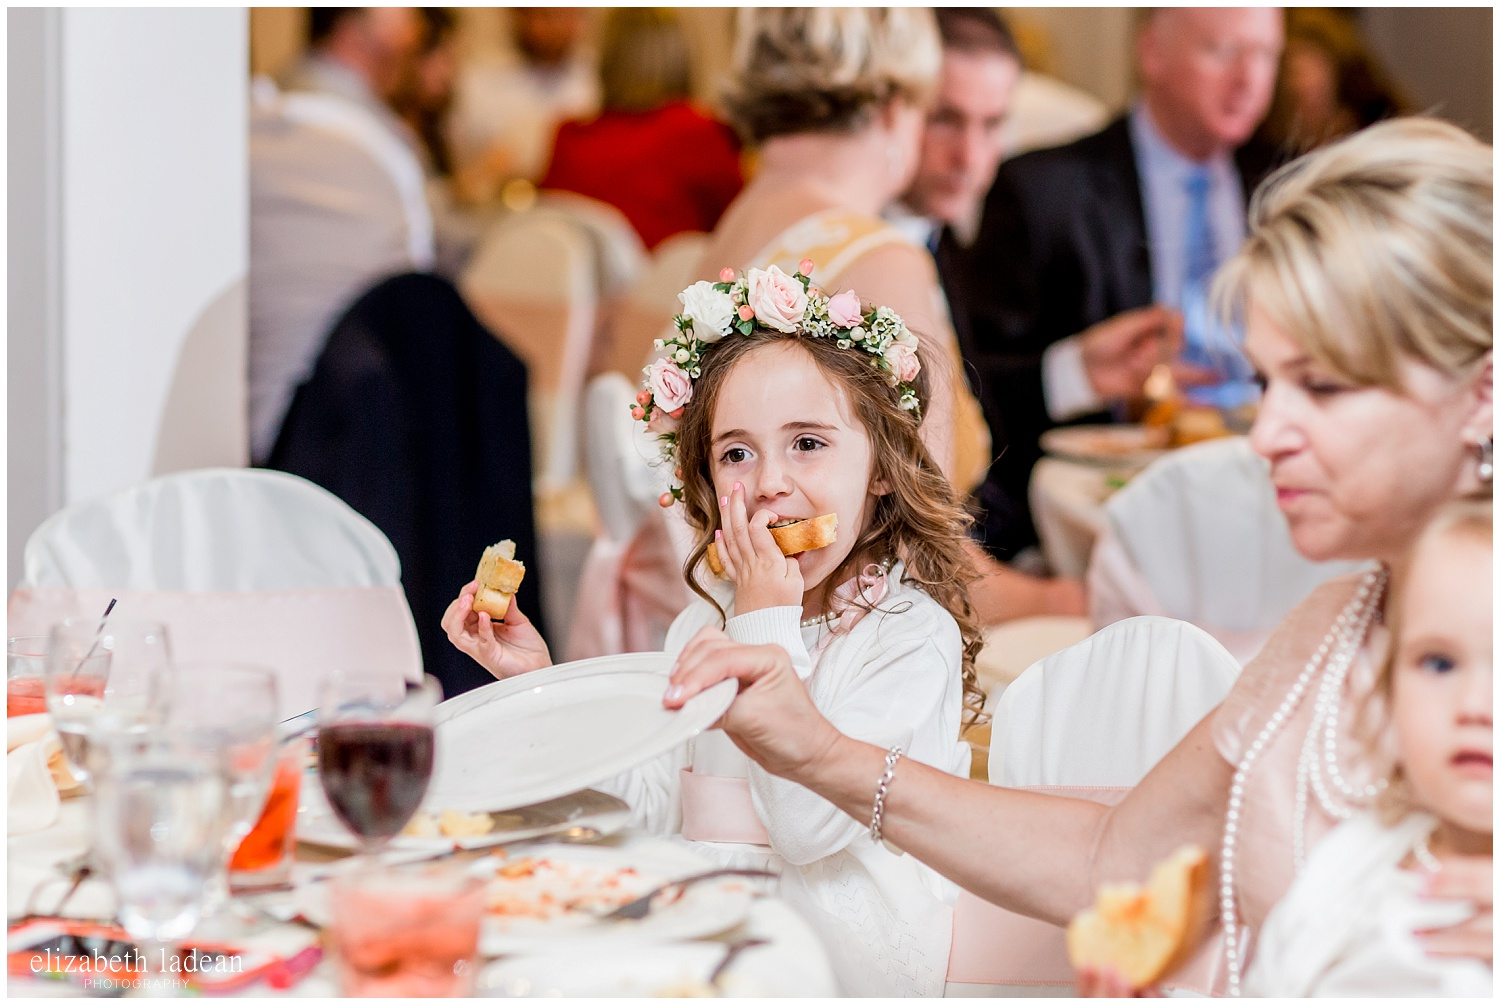 -behind-the-scenes-of-a-wedding-photographer-2018-elizabeth-ladean-photography-photo_3425.jpg